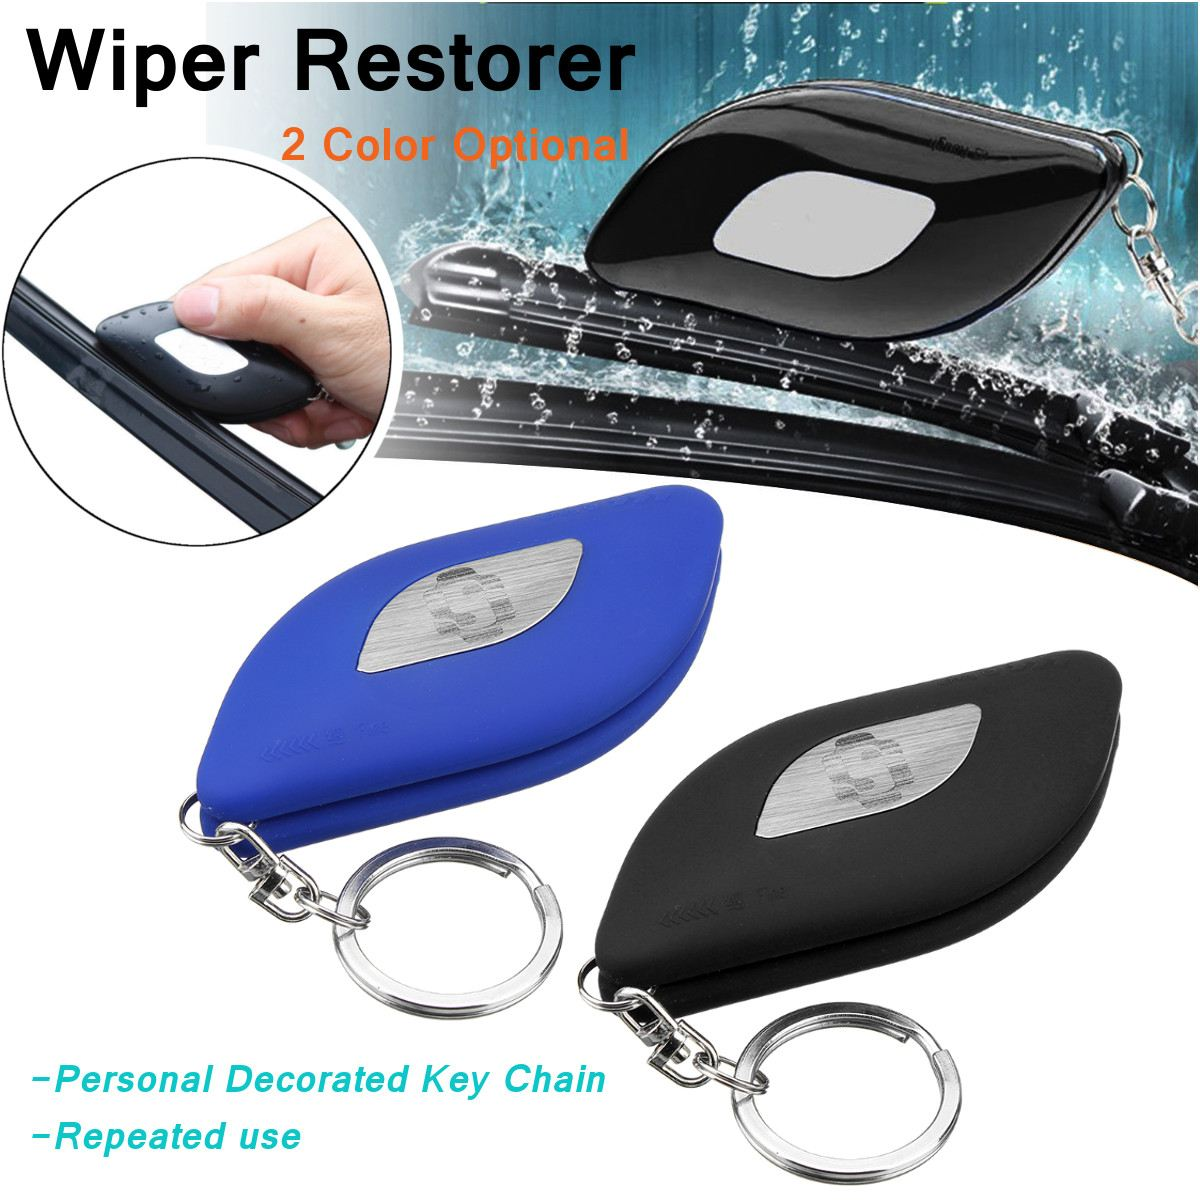 Universal Car Windshield Rubber Strip Restore Wiper Blades Repair Restorer Kit Fine/Rough Blades with Key Ring